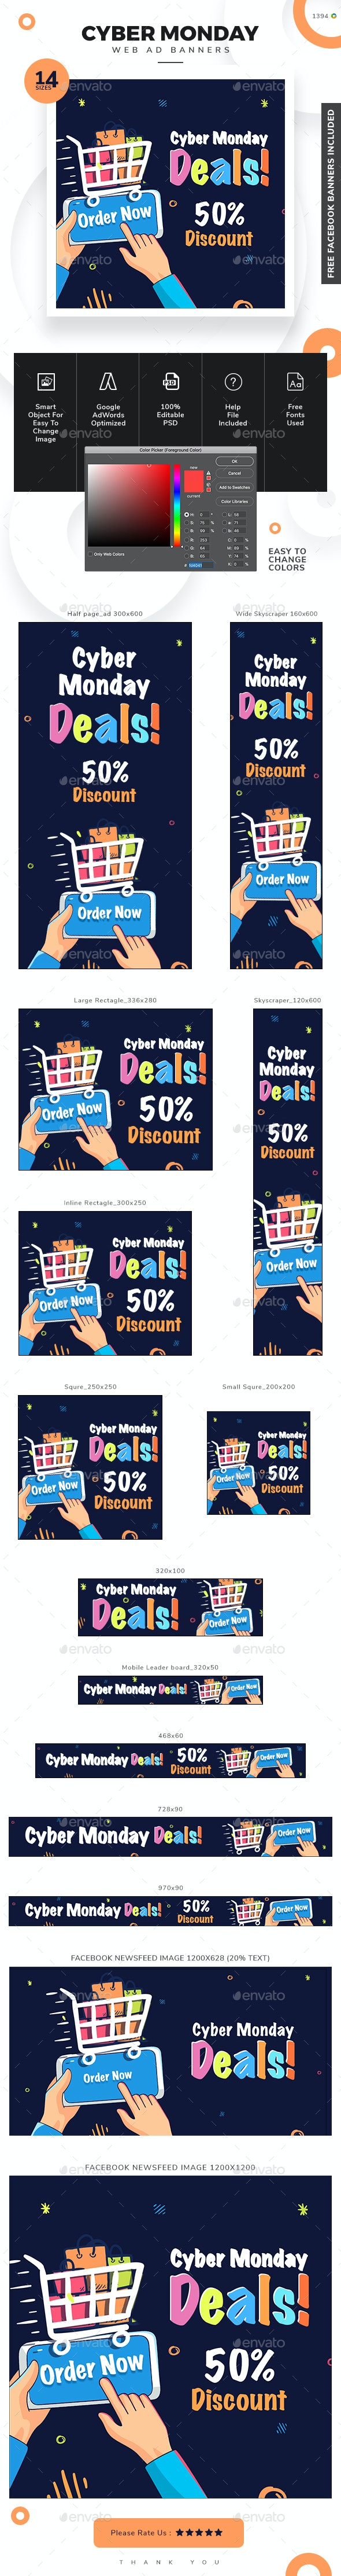 Cyber Monday Sale Banner Set - Banners & Ads Web Elements